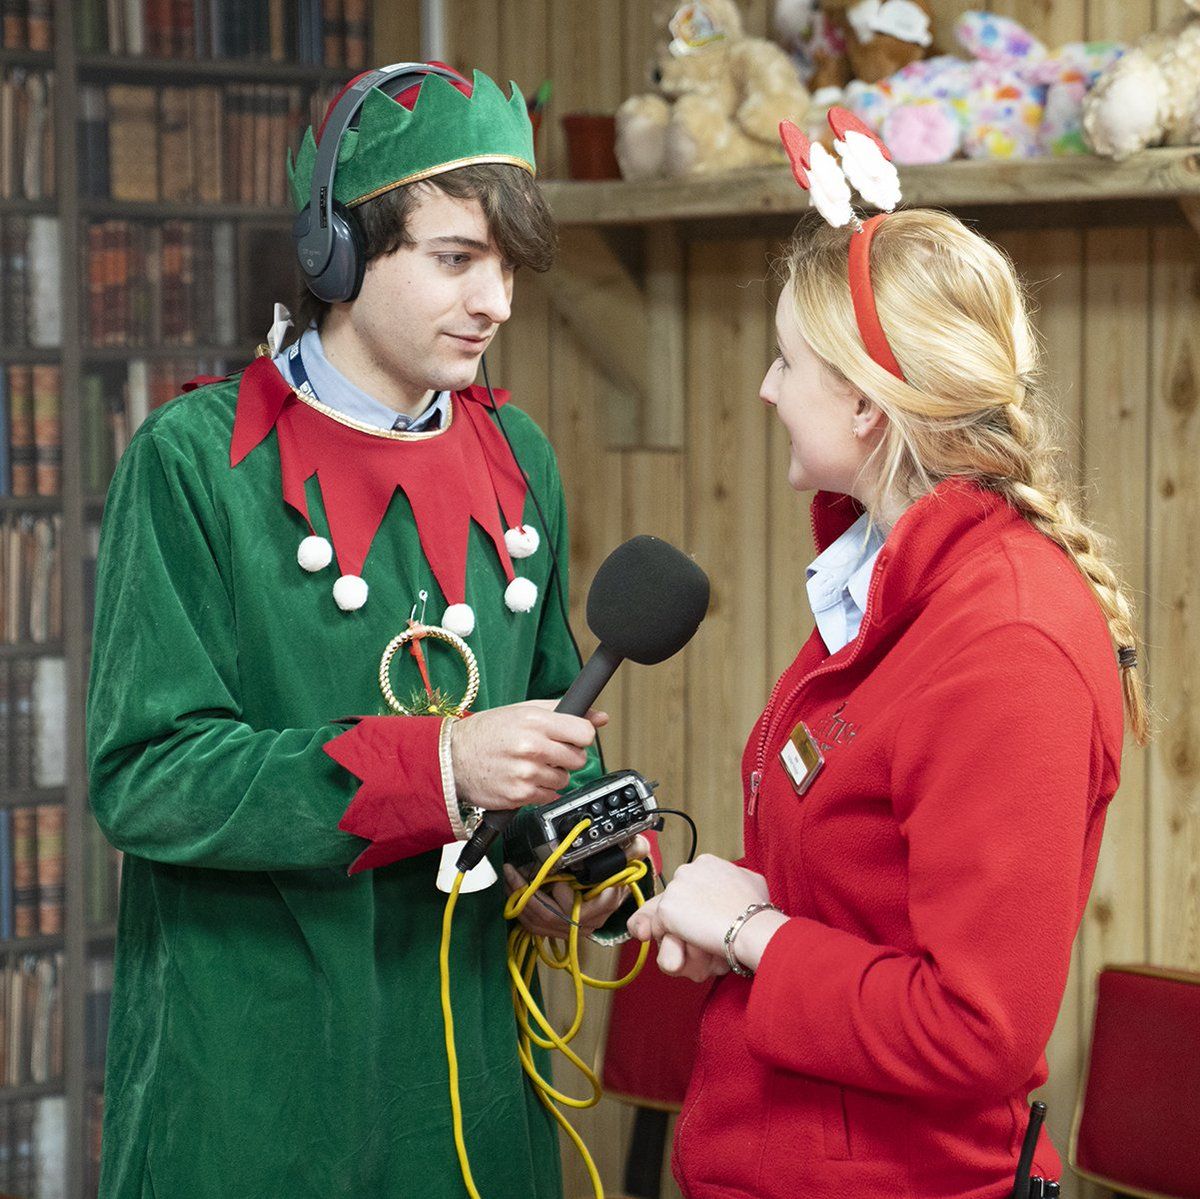 Britishgardencentres On Twitter Elf In Training Bgcentres With Hjparkhill For Bbcradiolincs And We Think He Is Doing A Great Job In Santa S Grotto At Brigg Garden Centre Https T Co Ub7yrkgvik